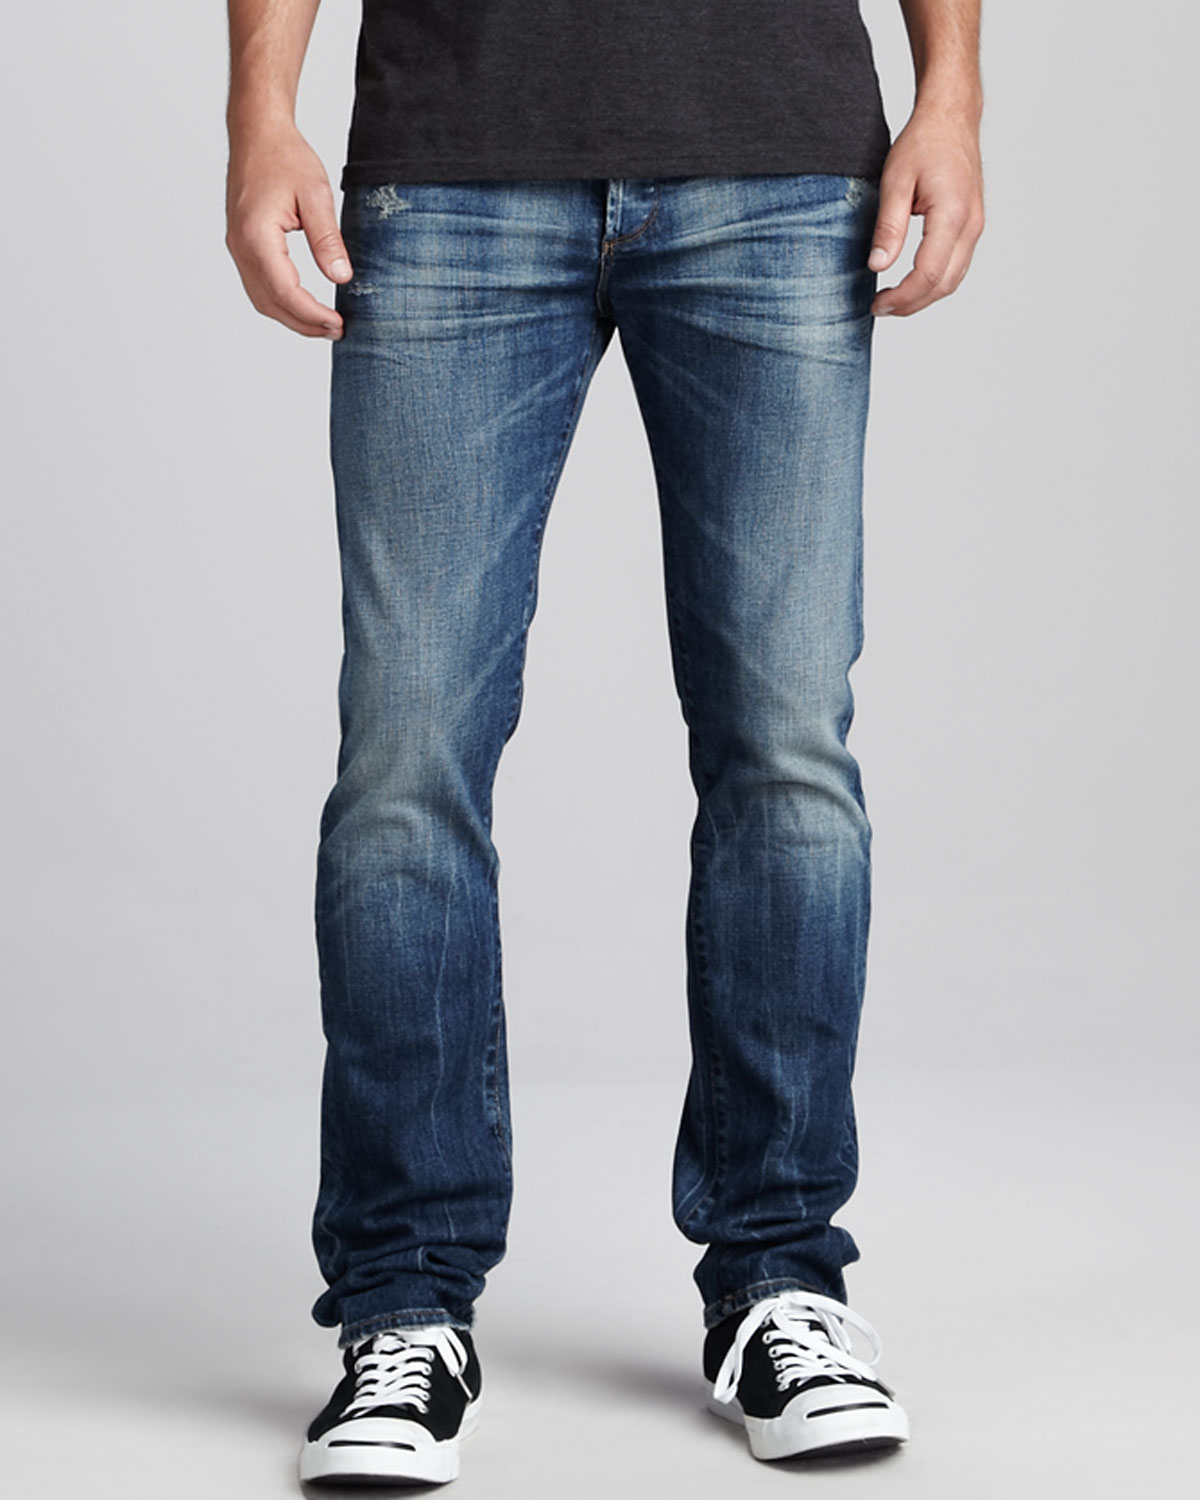 a5c0292b Citizens of Humanity Core Slimfit Jeans Lawrence in Blue for Men - Lyst